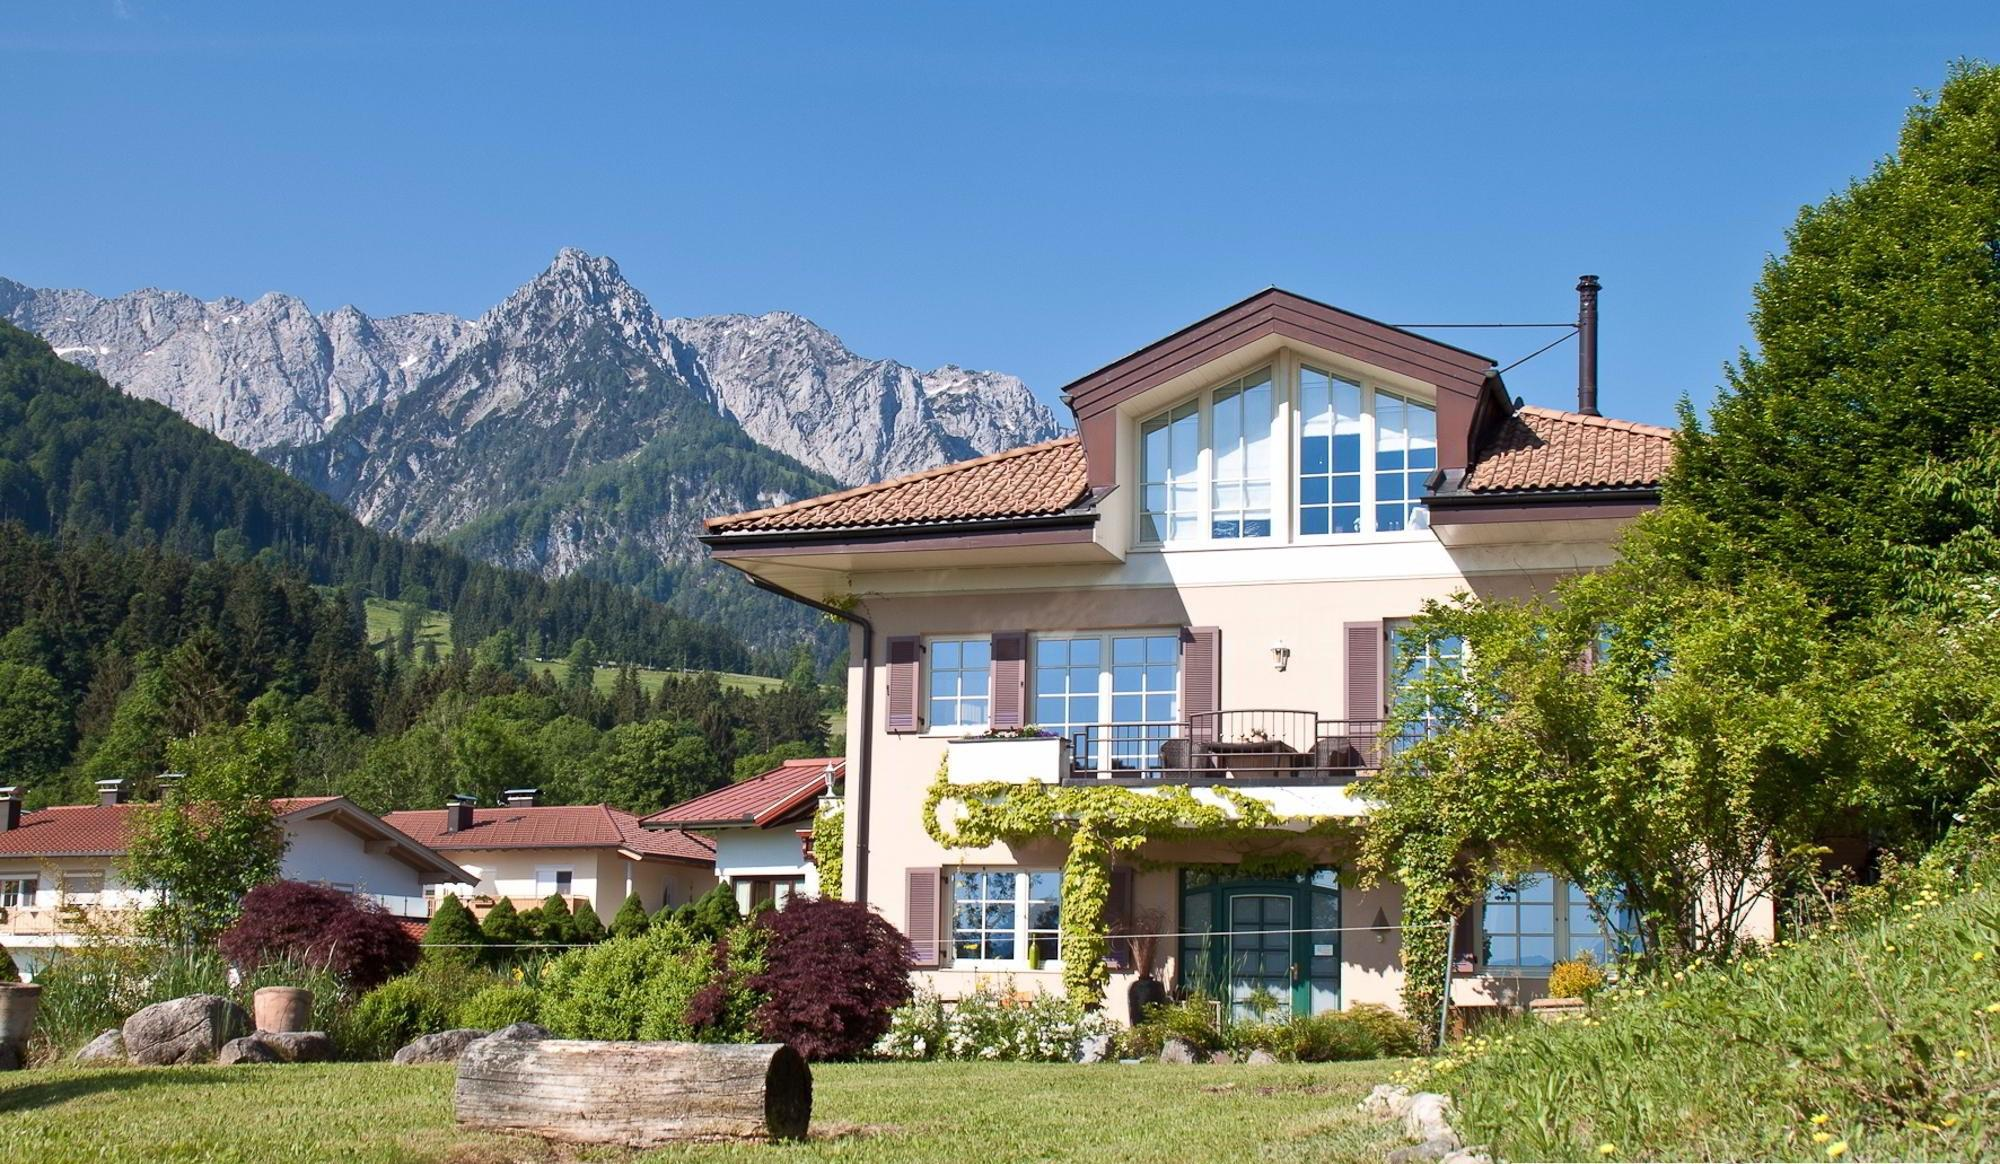 Onroerend goed in Oostenrijk - Comfortable country villa with a lake view in village of Walchsee